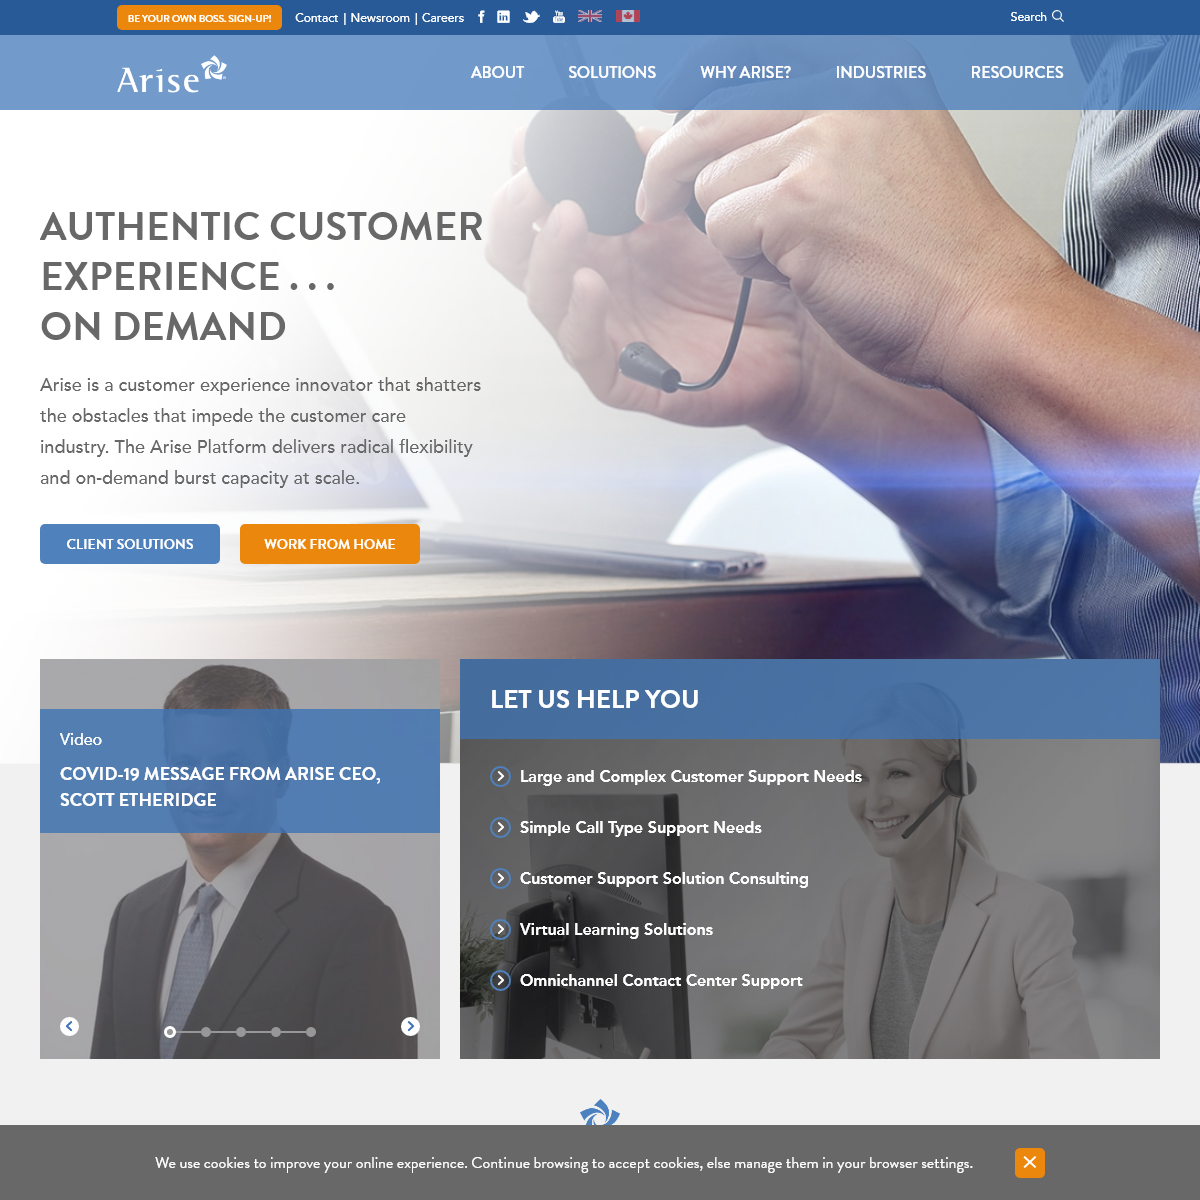 Customer Service Outsourcing Redefined - Arise